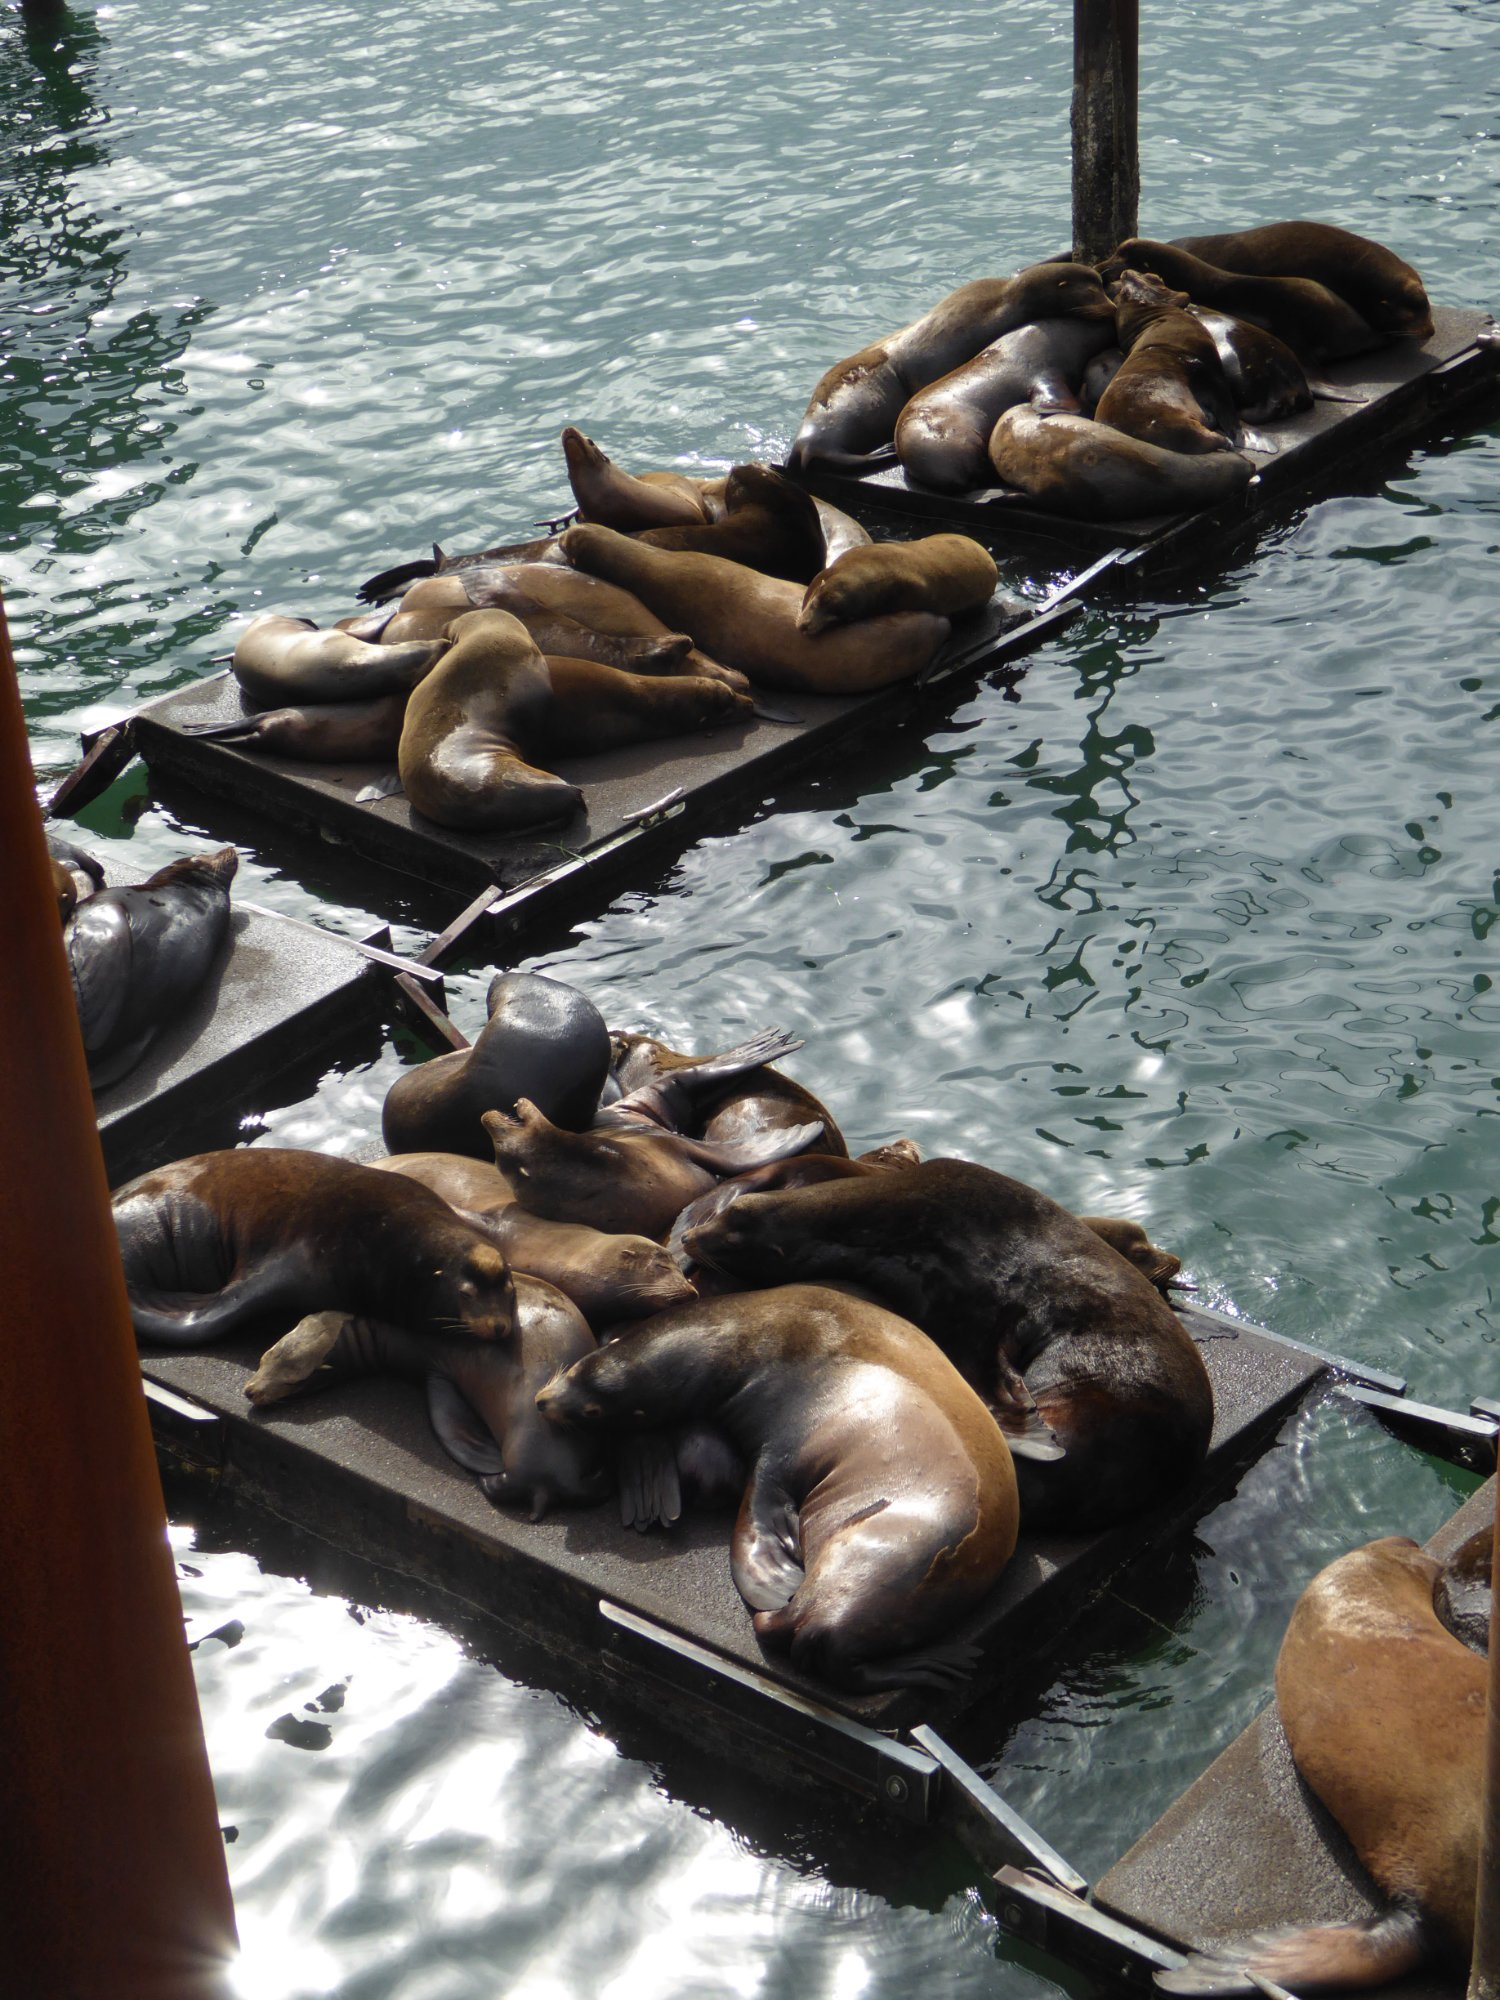 Sea Lions taking over boat docks at Newport harbor